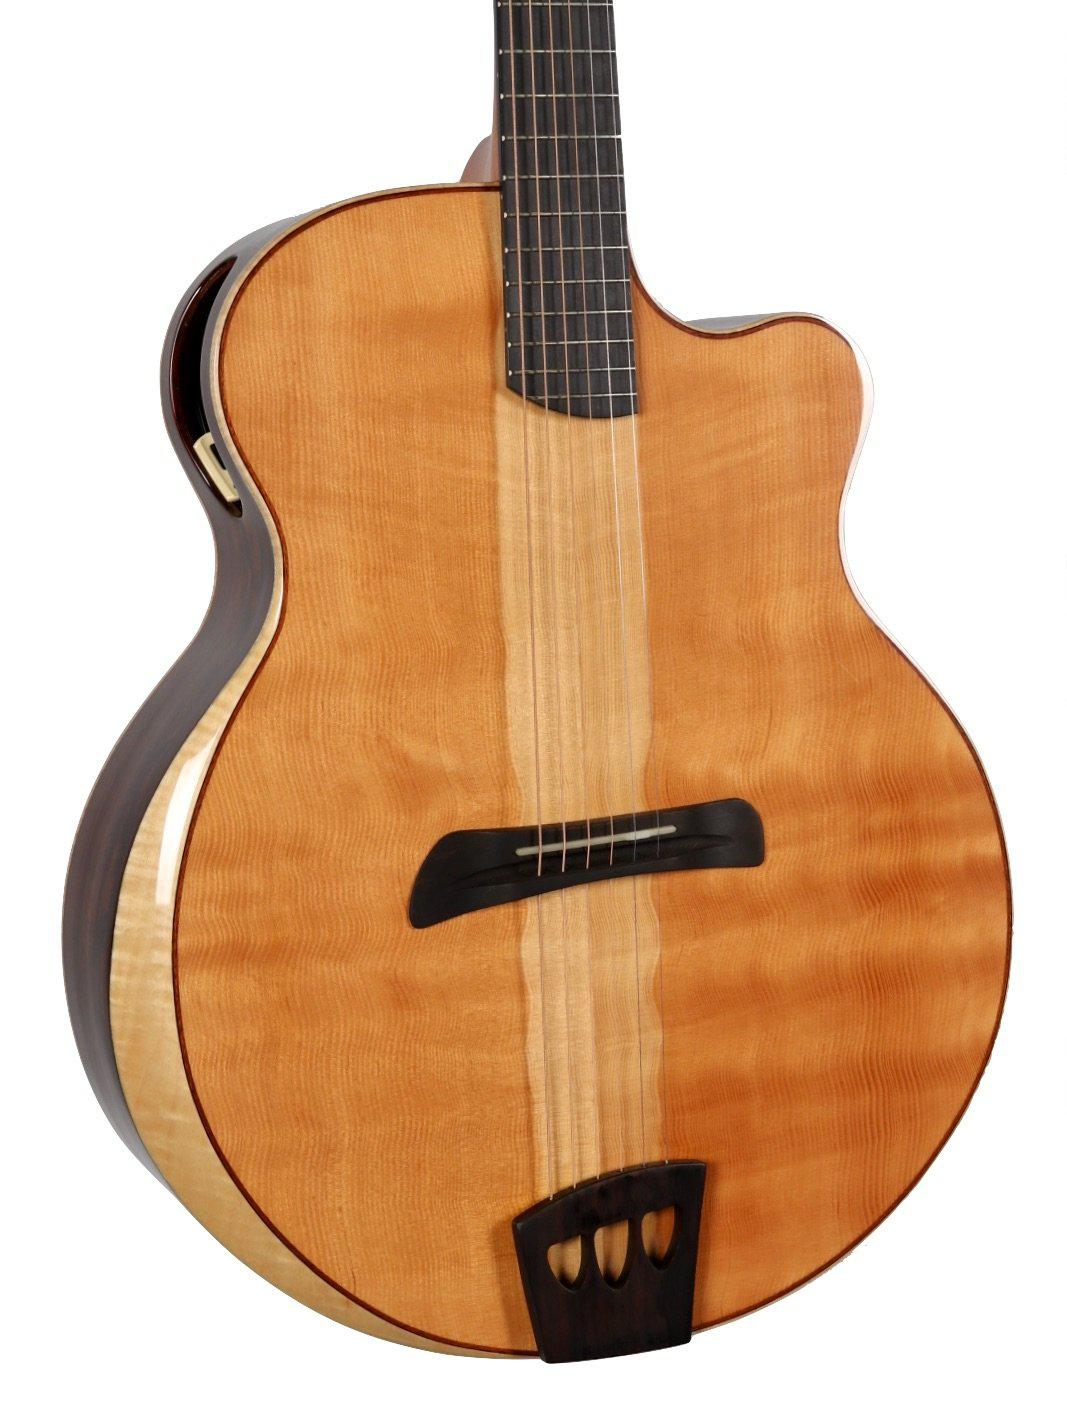 Batson Jumbo Figured Douglas Fir / Cloudy Cocobolo #19210102 - Batson - Heartbreaker Guitars